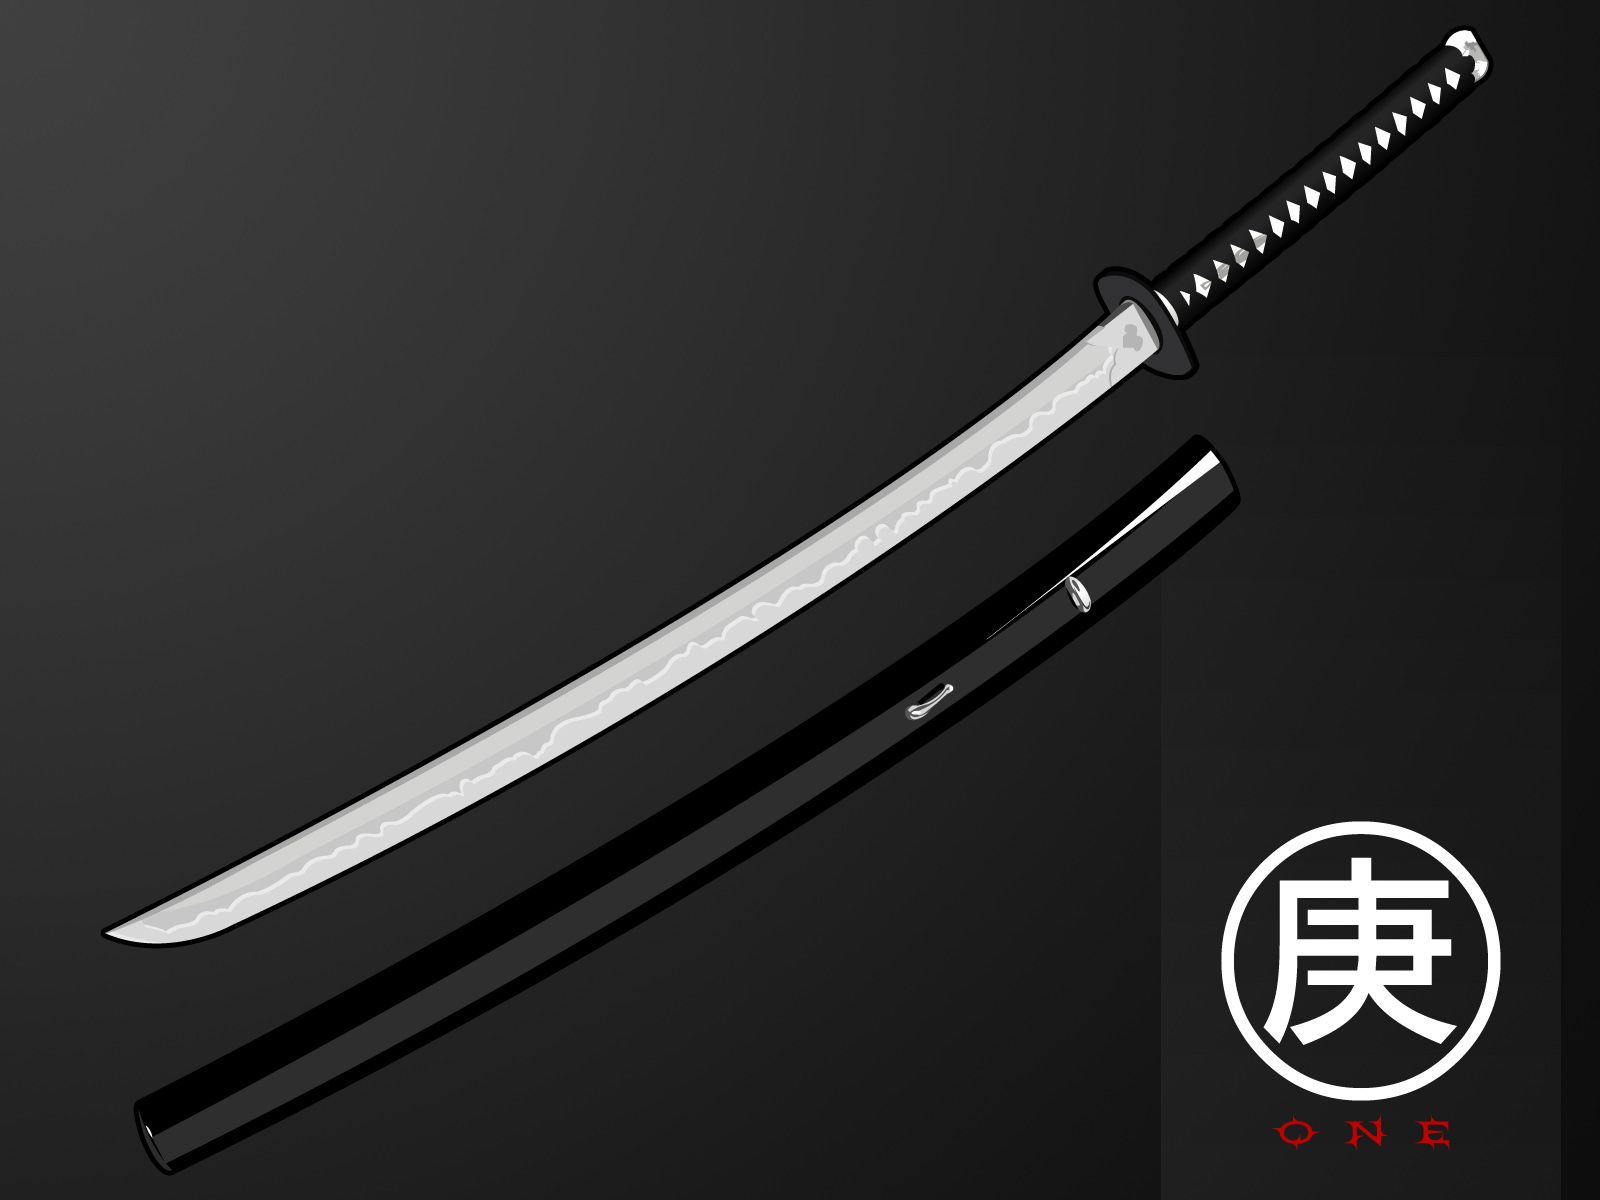 katana - samurai sword | wish list | pinterest | katana, sword and